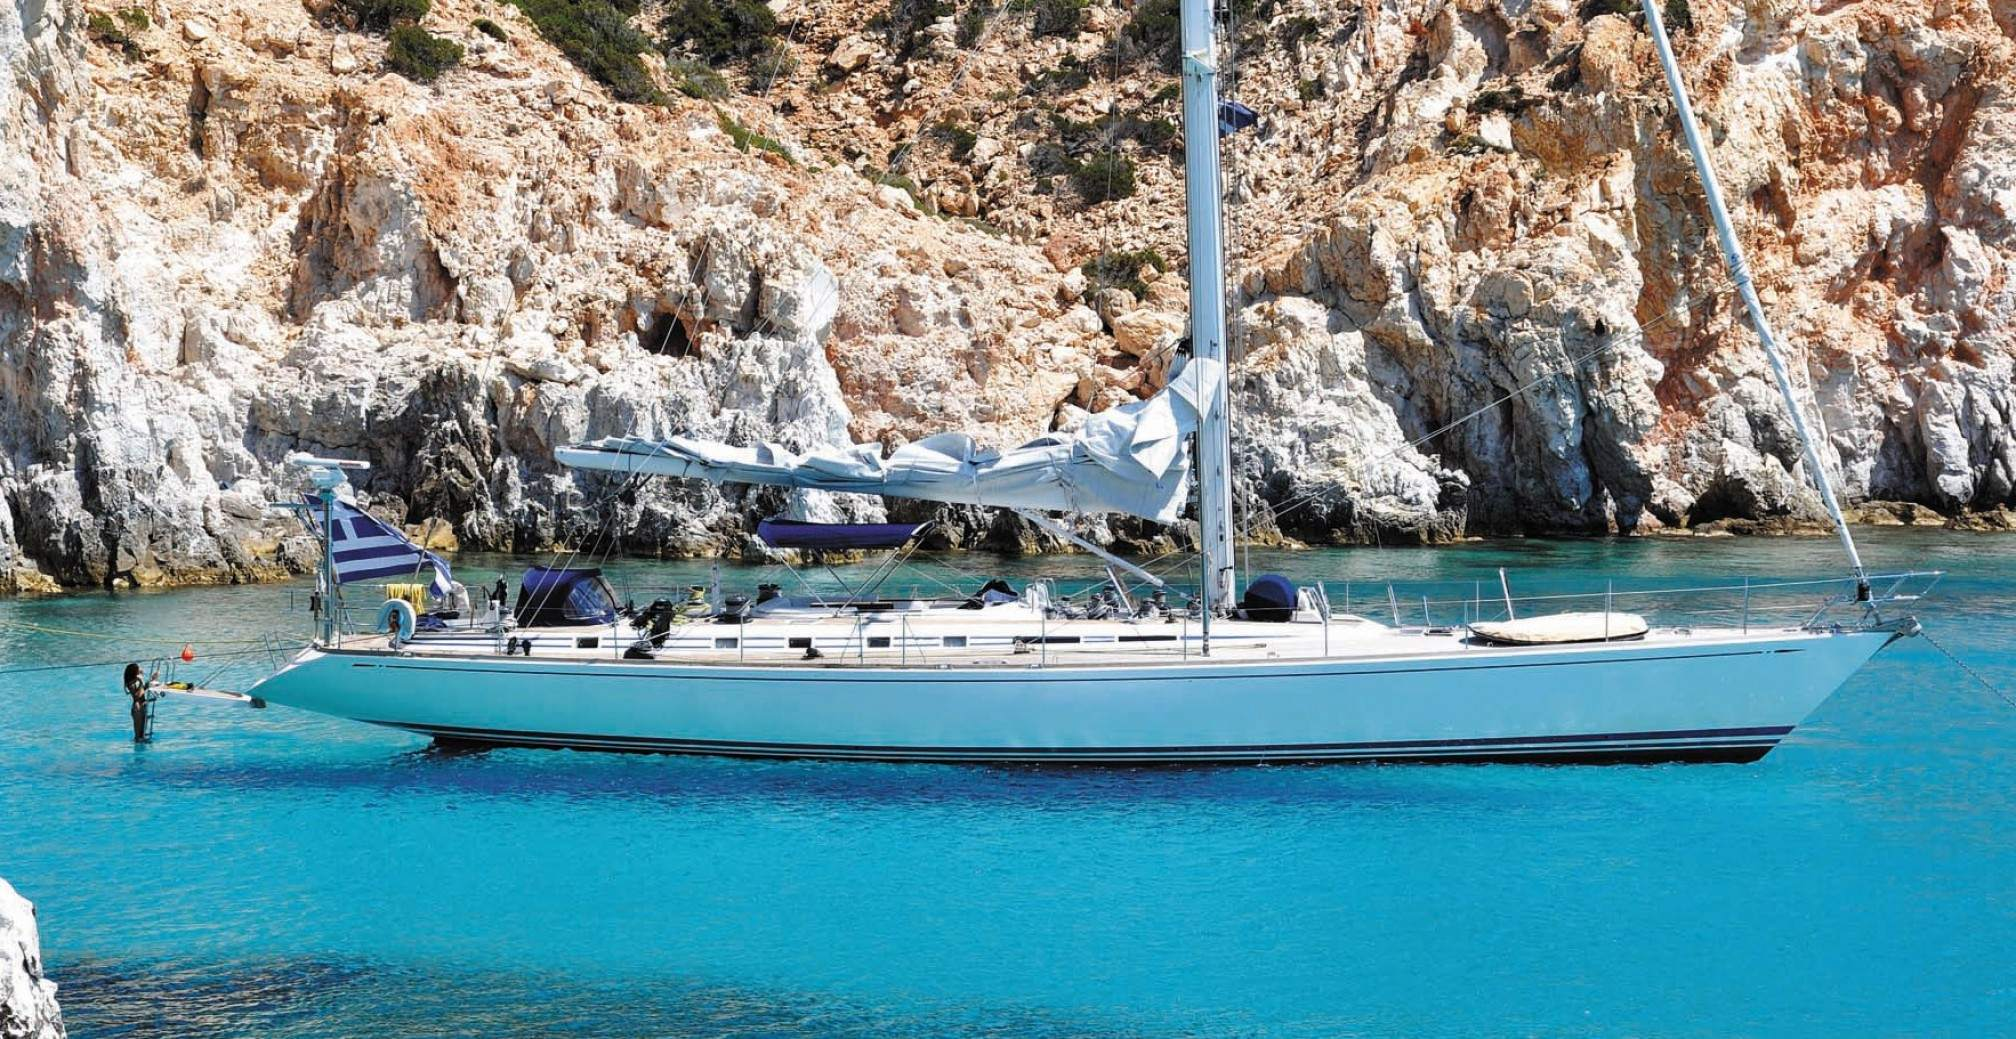 Callisto crewed sailboat charter in Athens